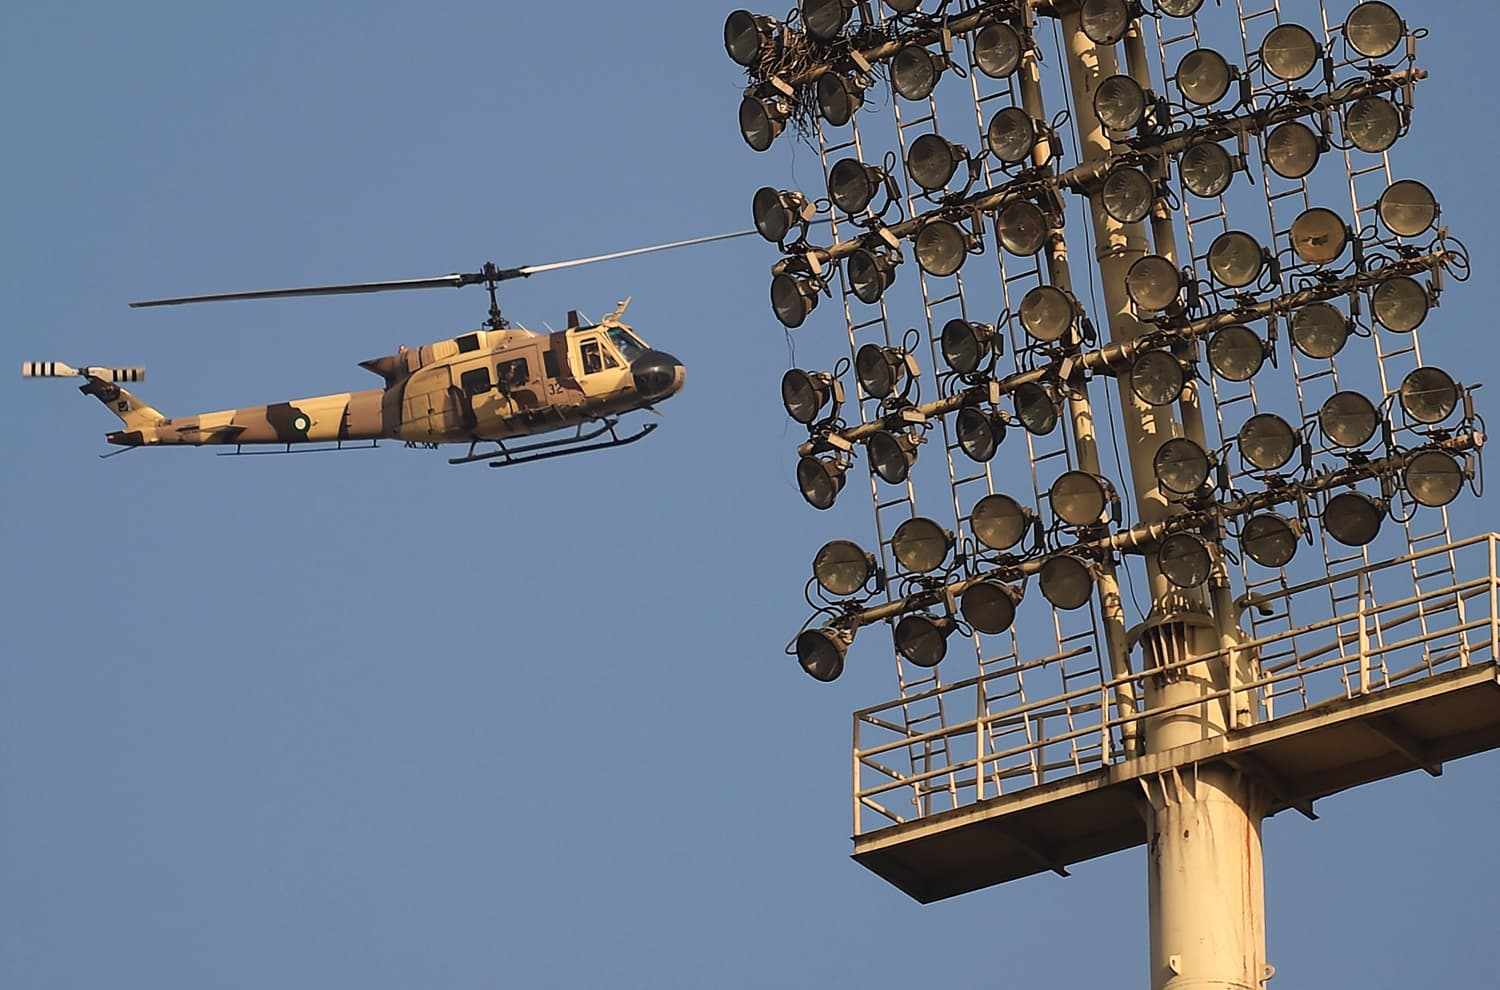 A Pakistani army helicopter flies past floodlights as it patrols over Gaddafi Stadium. — AFP